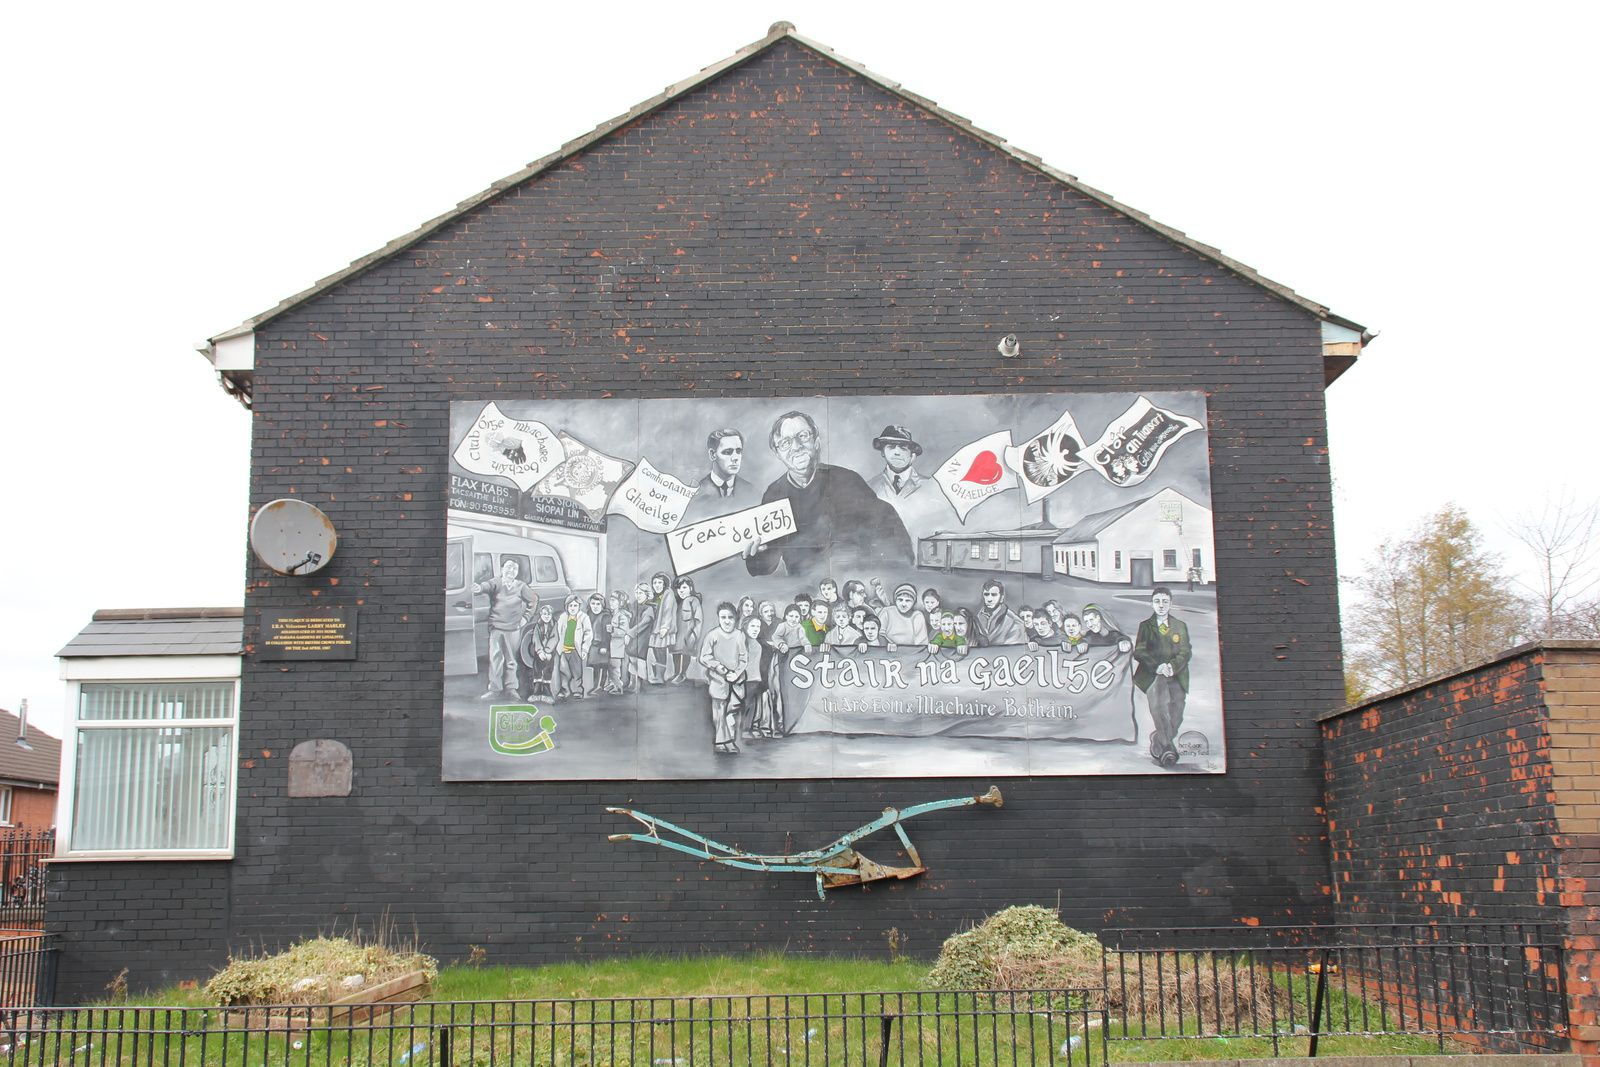 518) Ardoyne Avenue, North Belfast